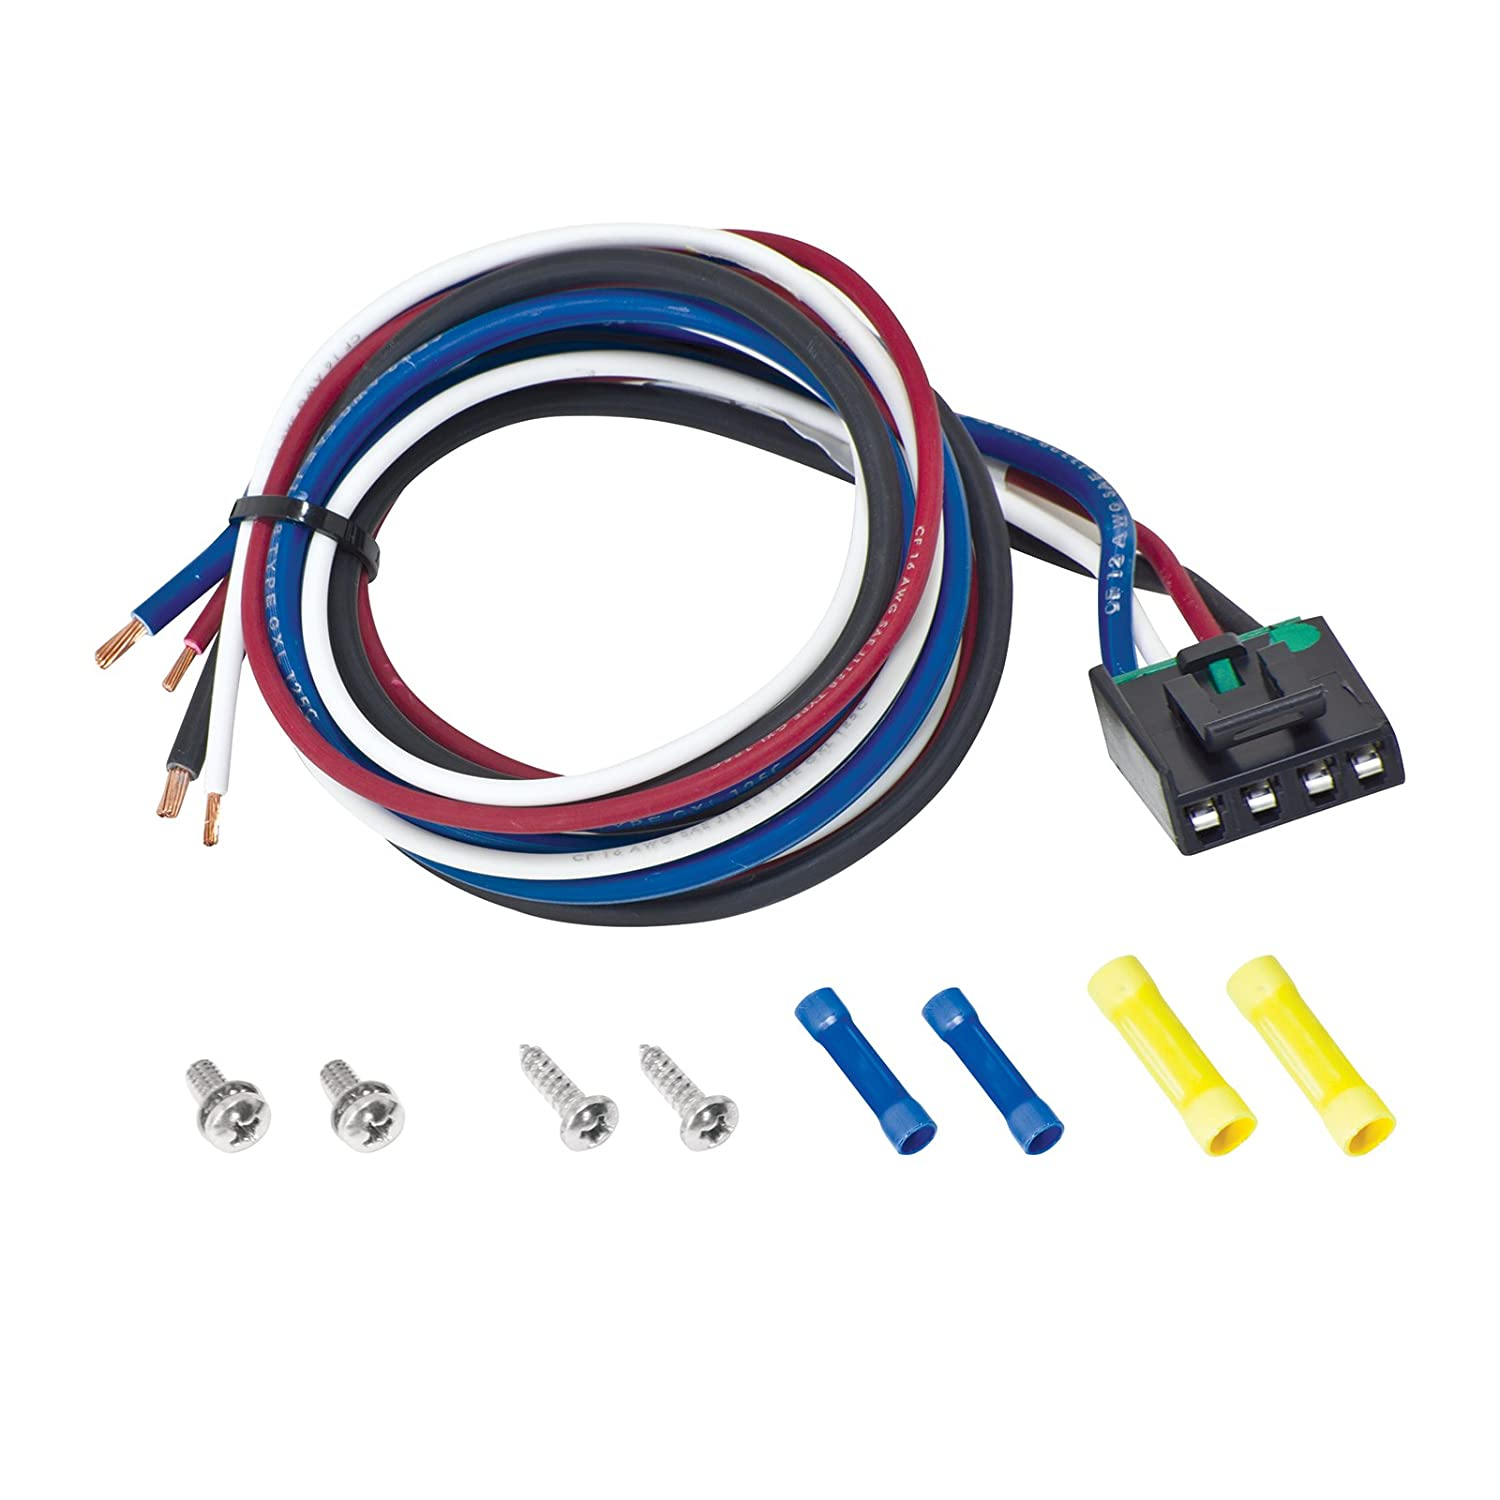 71jCJaf1RuL._SL1500_ amazon com tekonsha 7894 brake control pigtail harness kit tekonsha p3 wiring harness at n-0.co